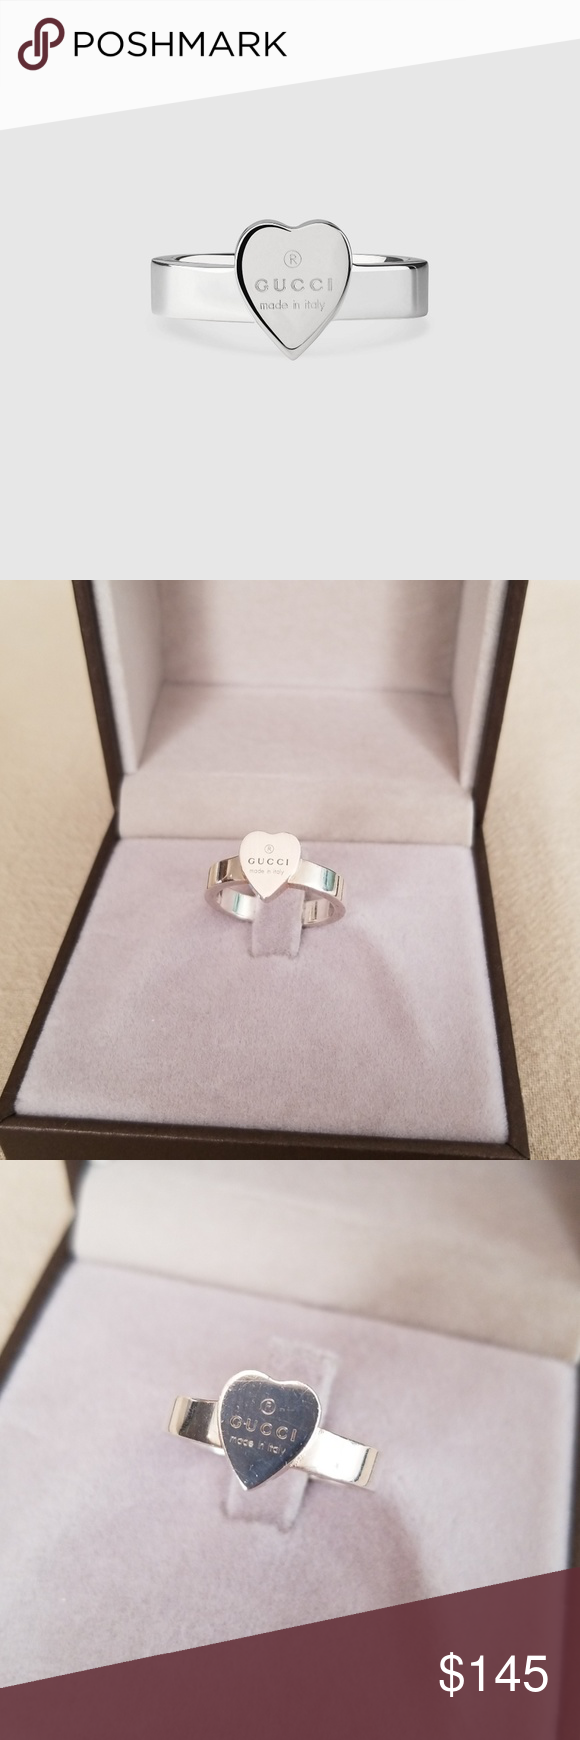 d792050d5ac9e Gucci Trademark Heart Ring sz 6.5 Awesome, Authentic Heart Ring with ...